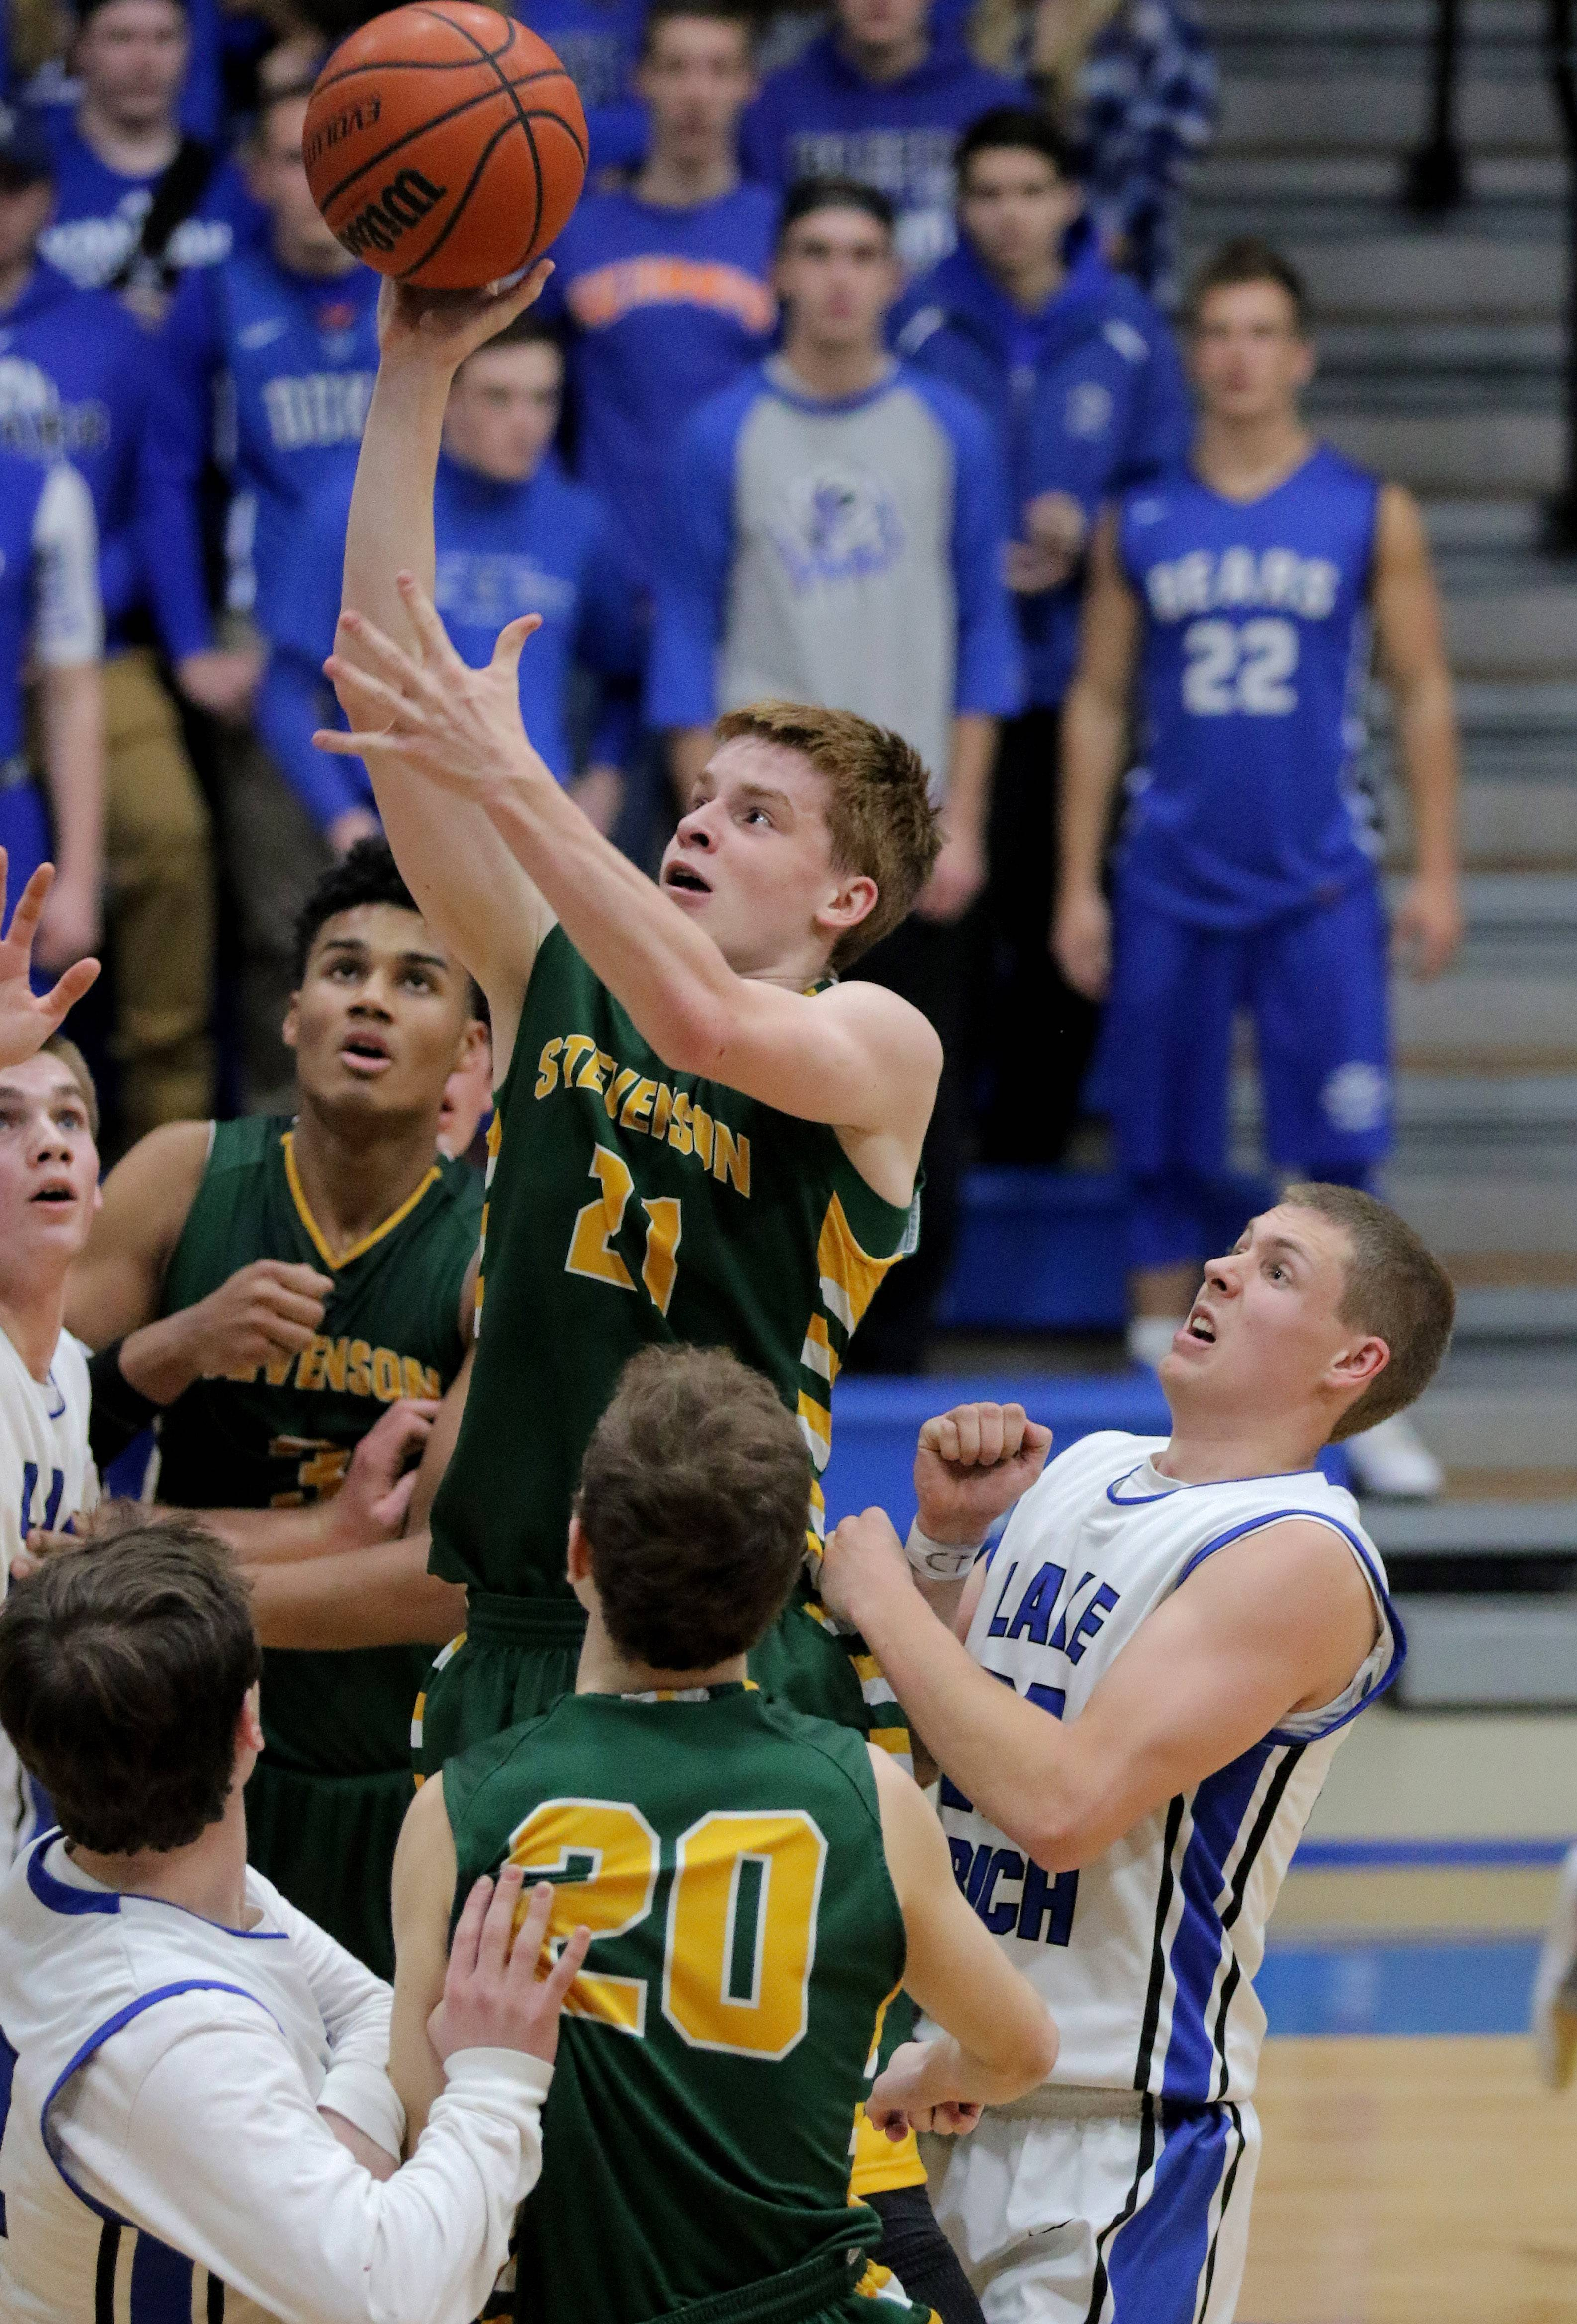 Stevenson's Jackson Qualley (21) drives to the hoop through a crowd Tuesday night in Lake Zurich.